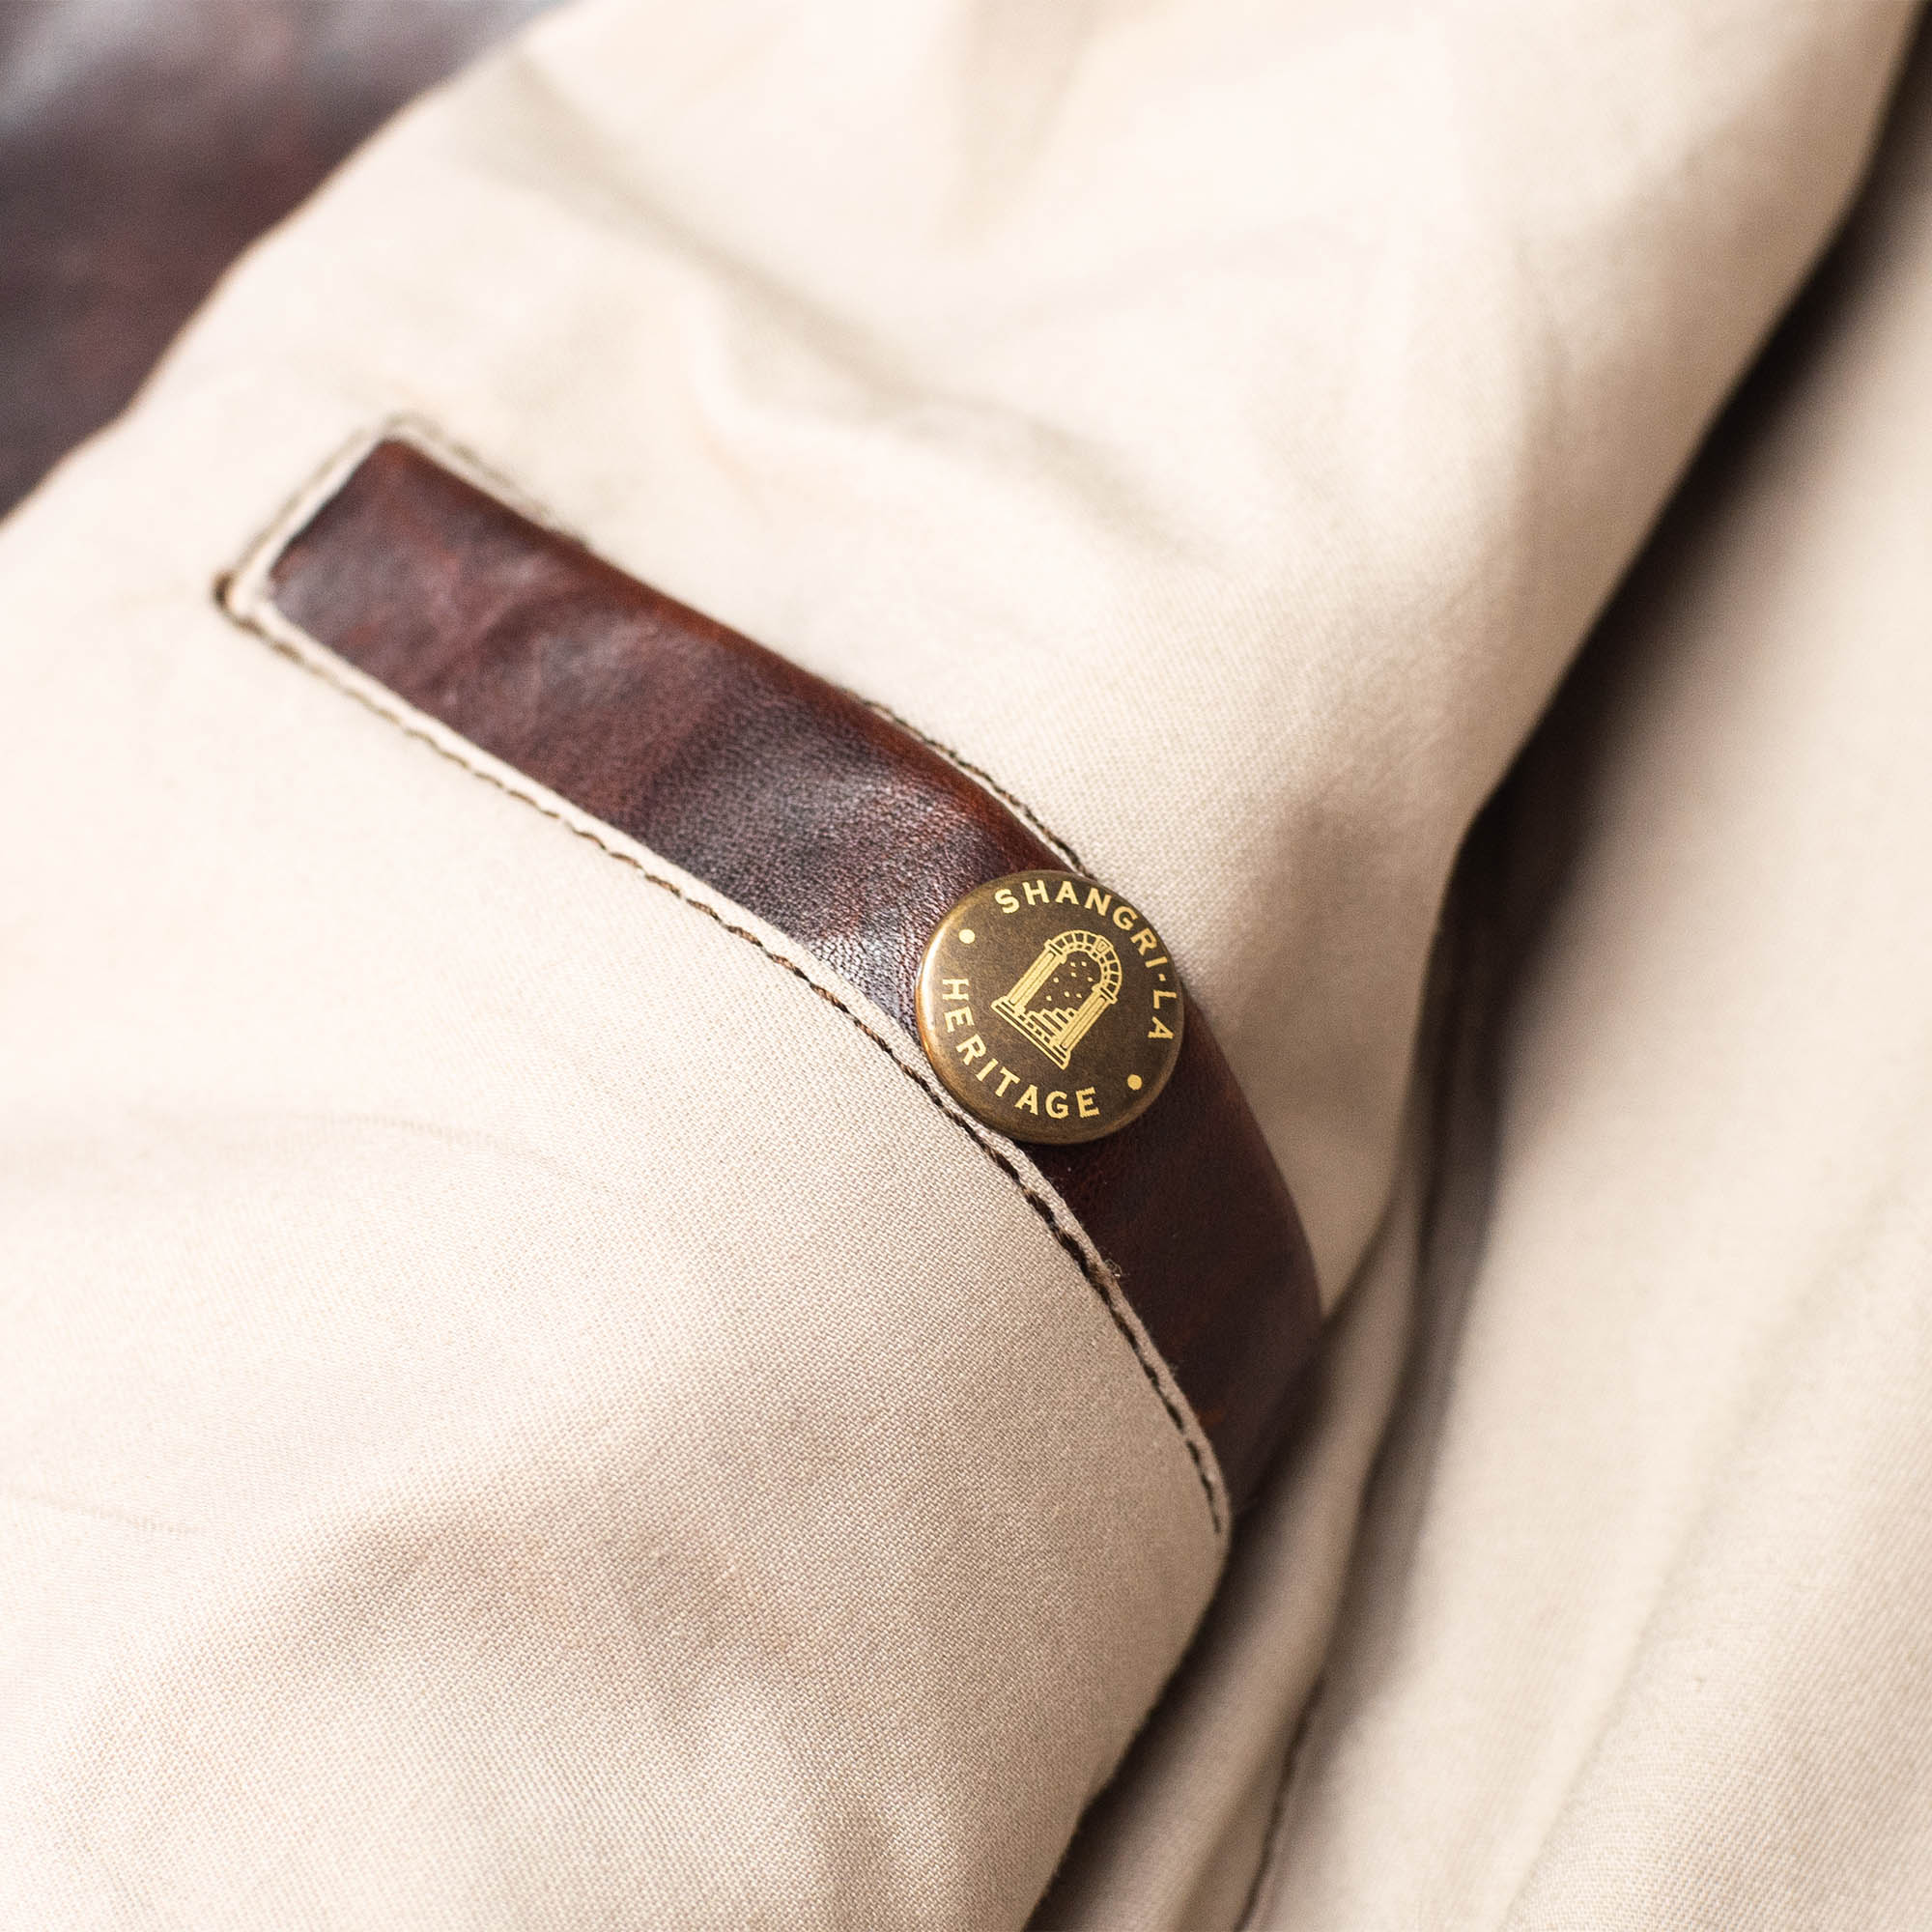 shangri-la-heritage-varenne-whiskey-horsehide-leather-jacket-still-life-inner-pocket